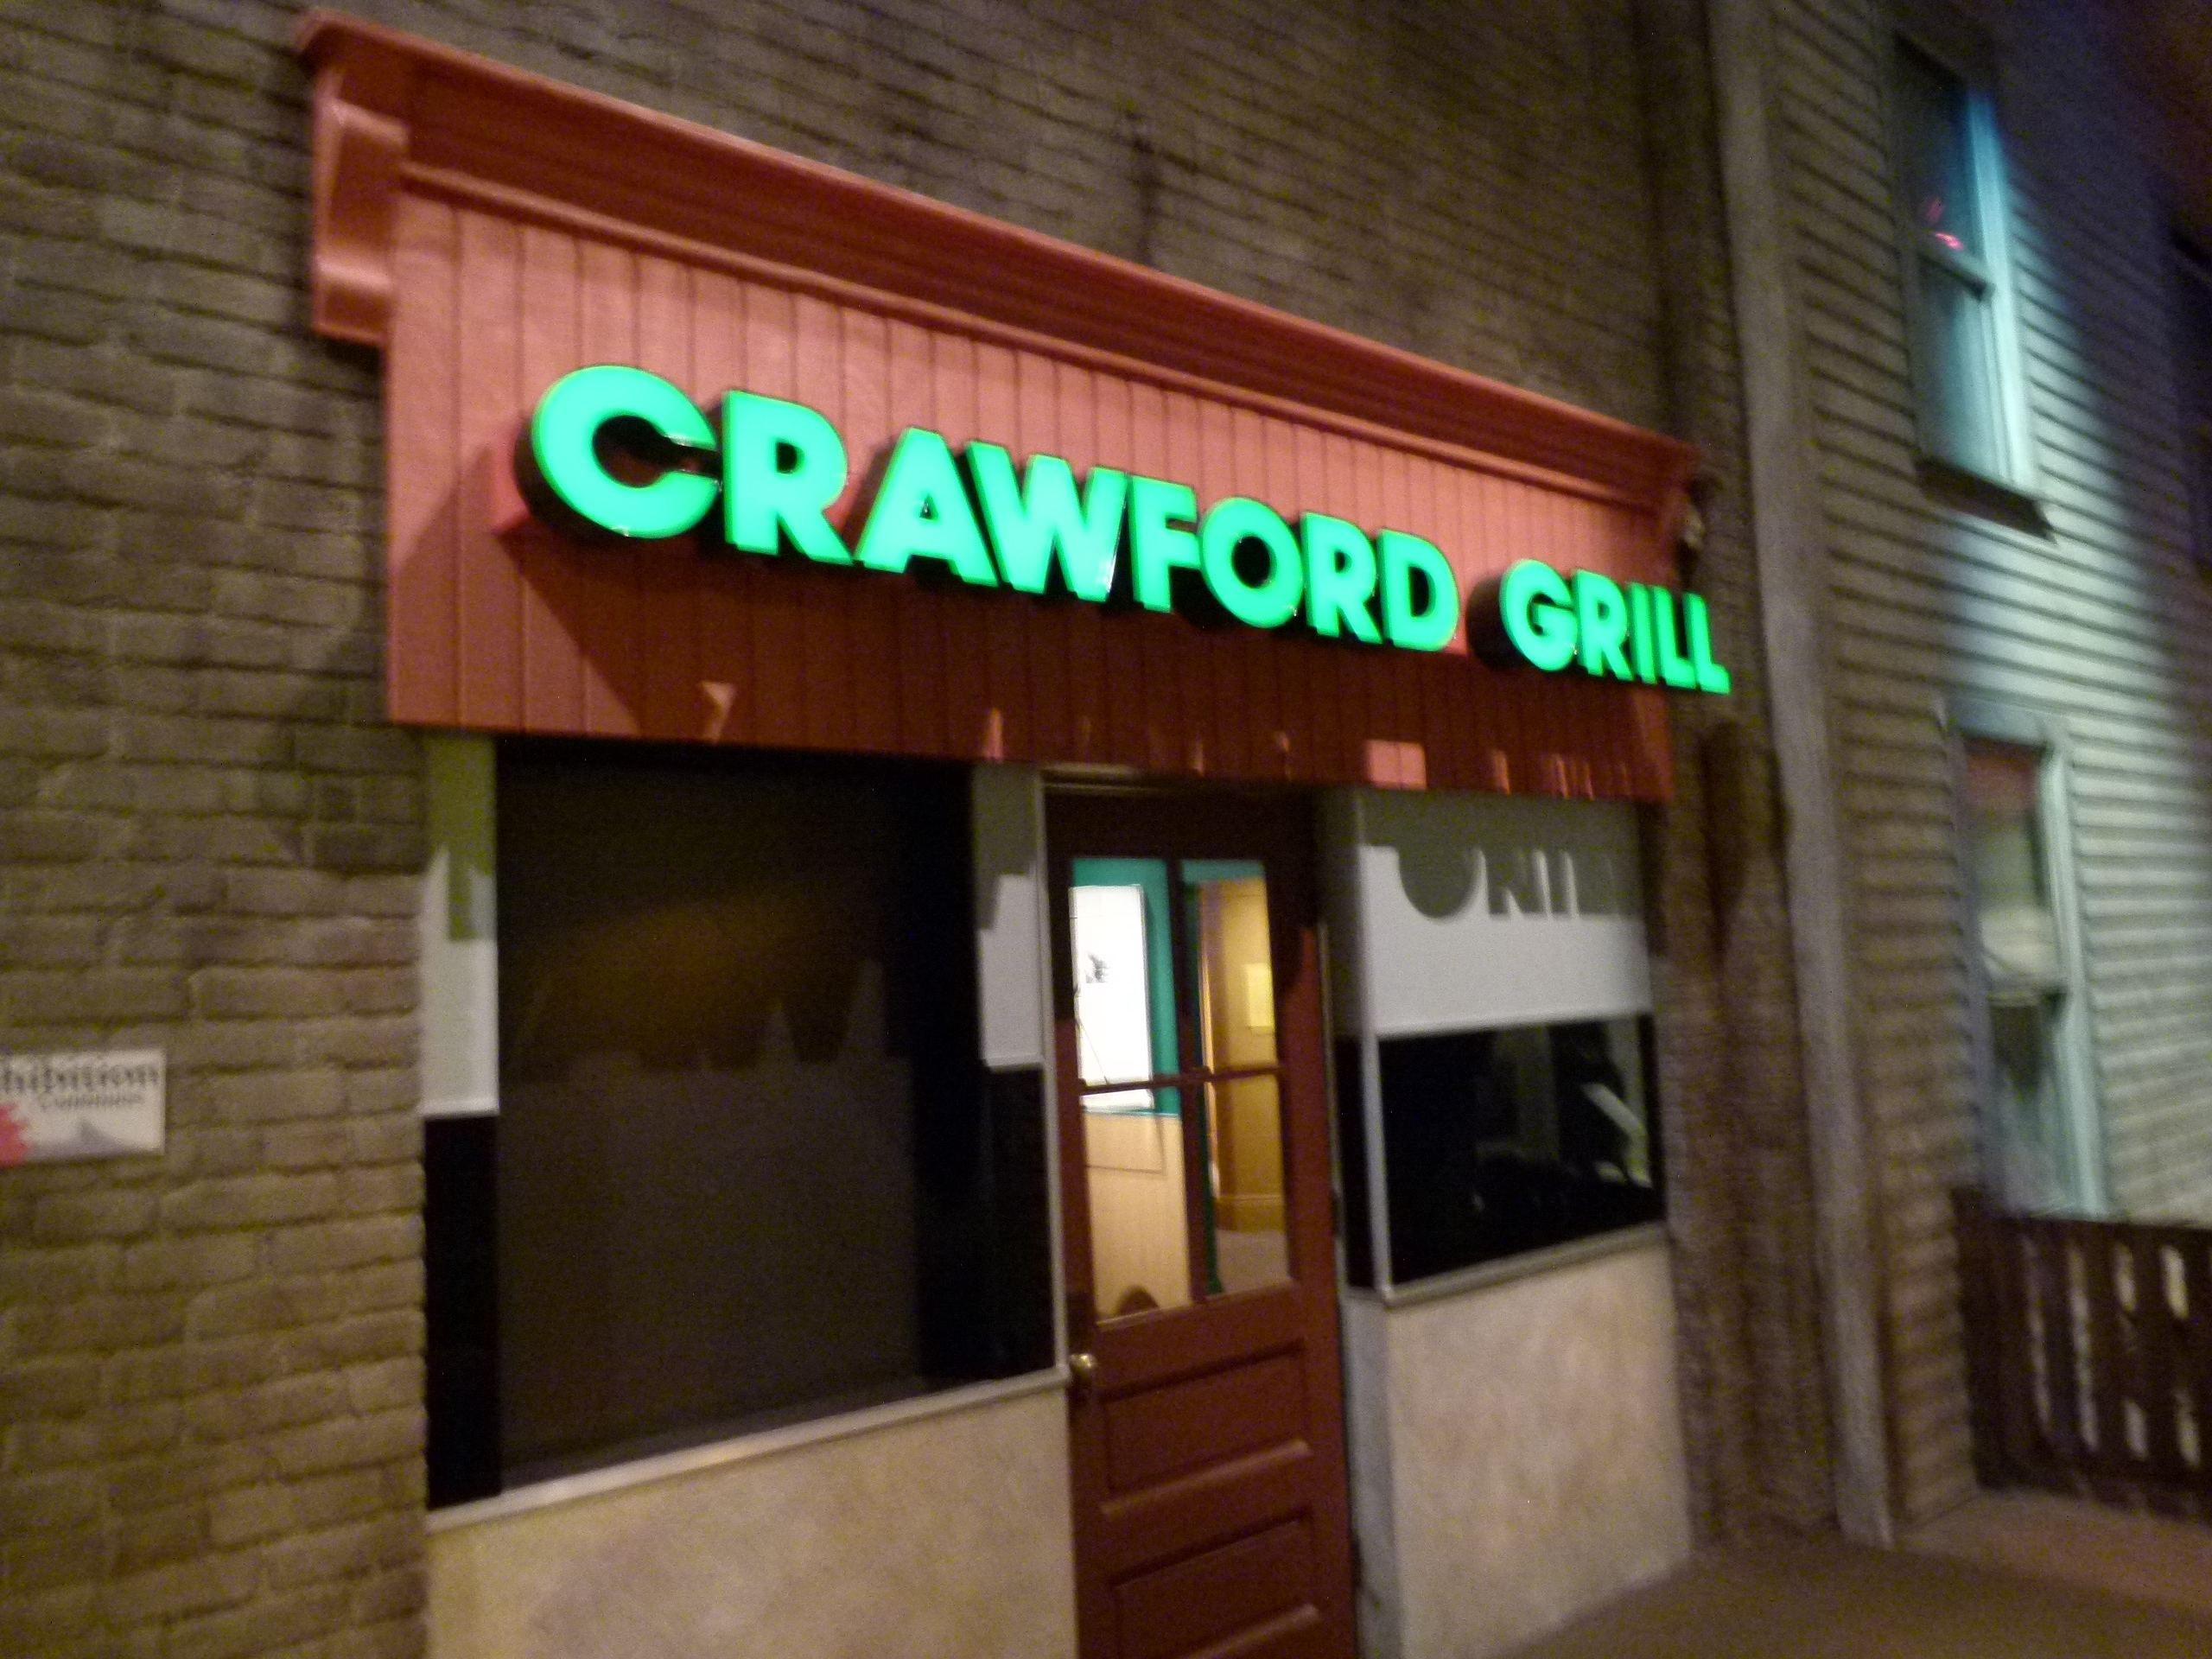 The exterior facade of the legendary Crawford Grill jazz club in Pittsburgh's Hill District.